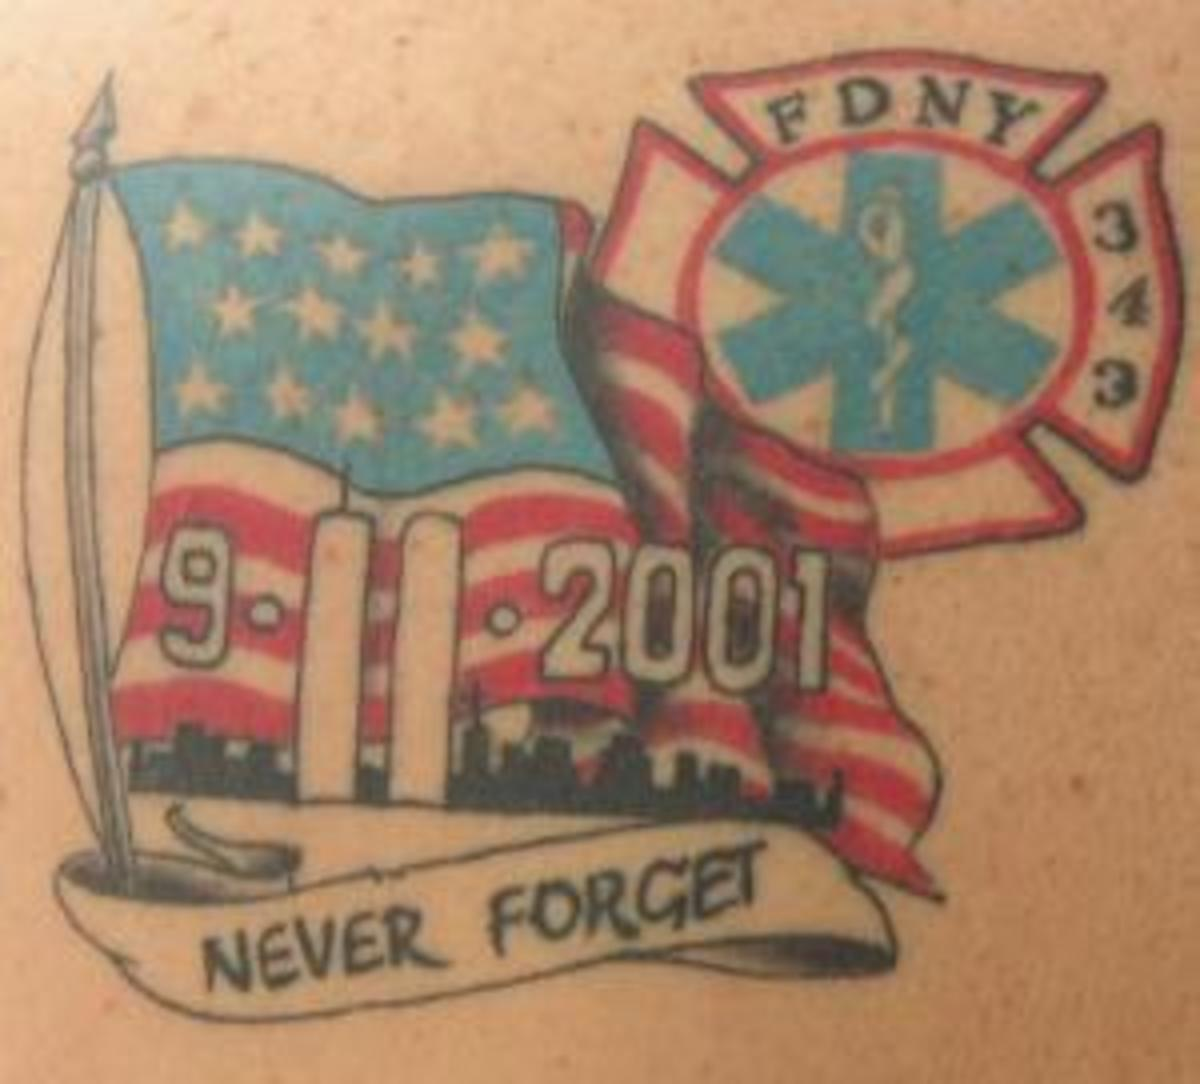 9/11 tattoos memorialize the infamous morning when terrorists flew two planes into the World Trade Center